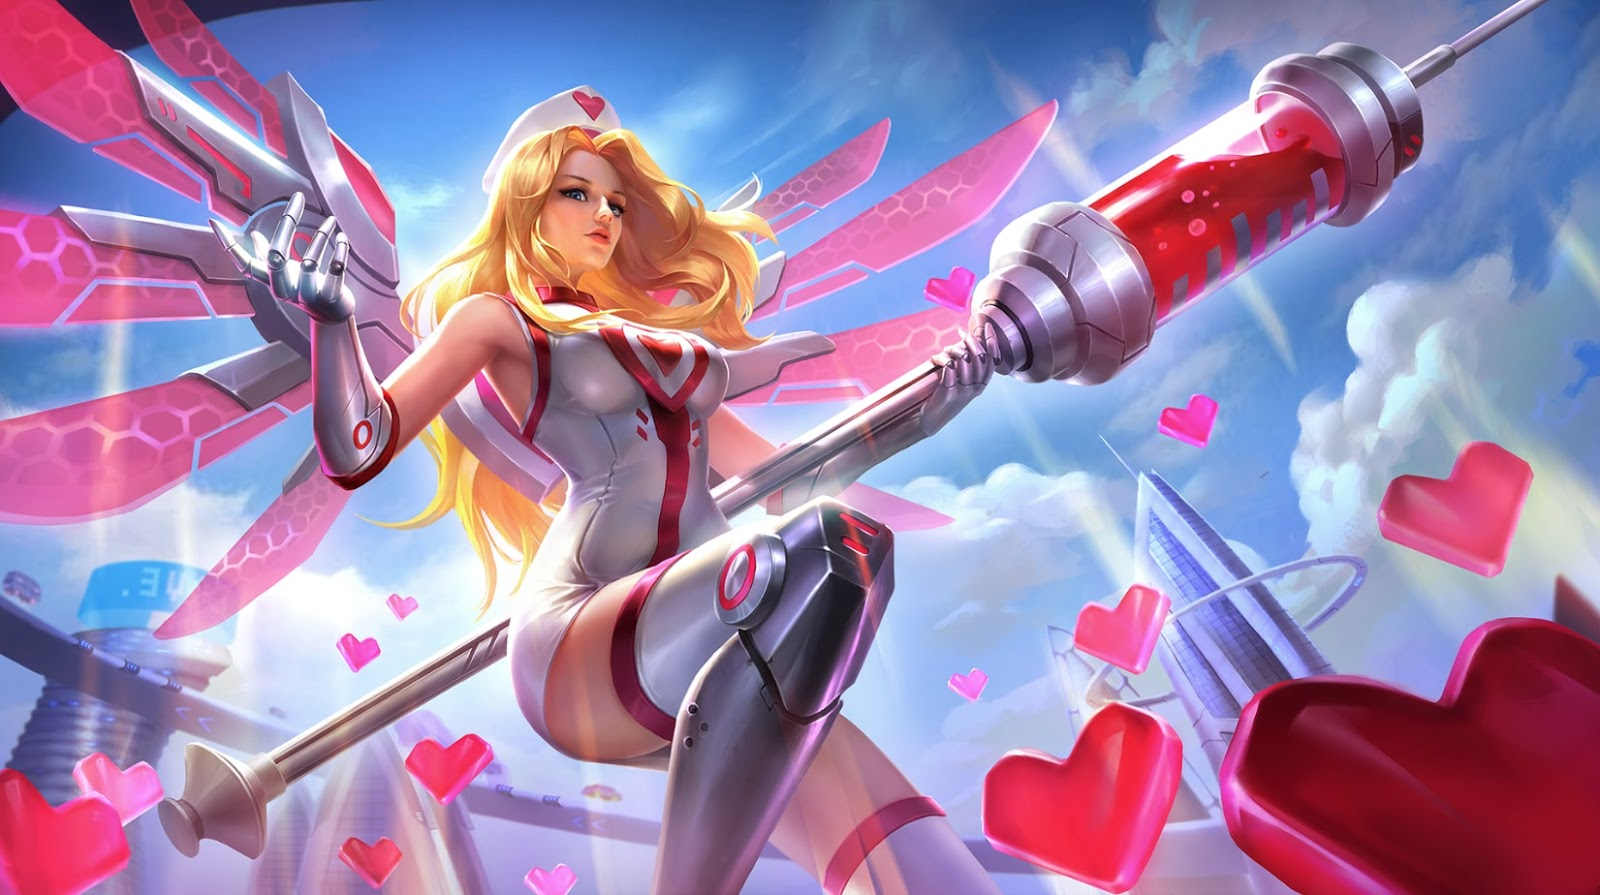 Wallpaper Rafaela Biomedic Skin Mobile Legeneds HD for PC